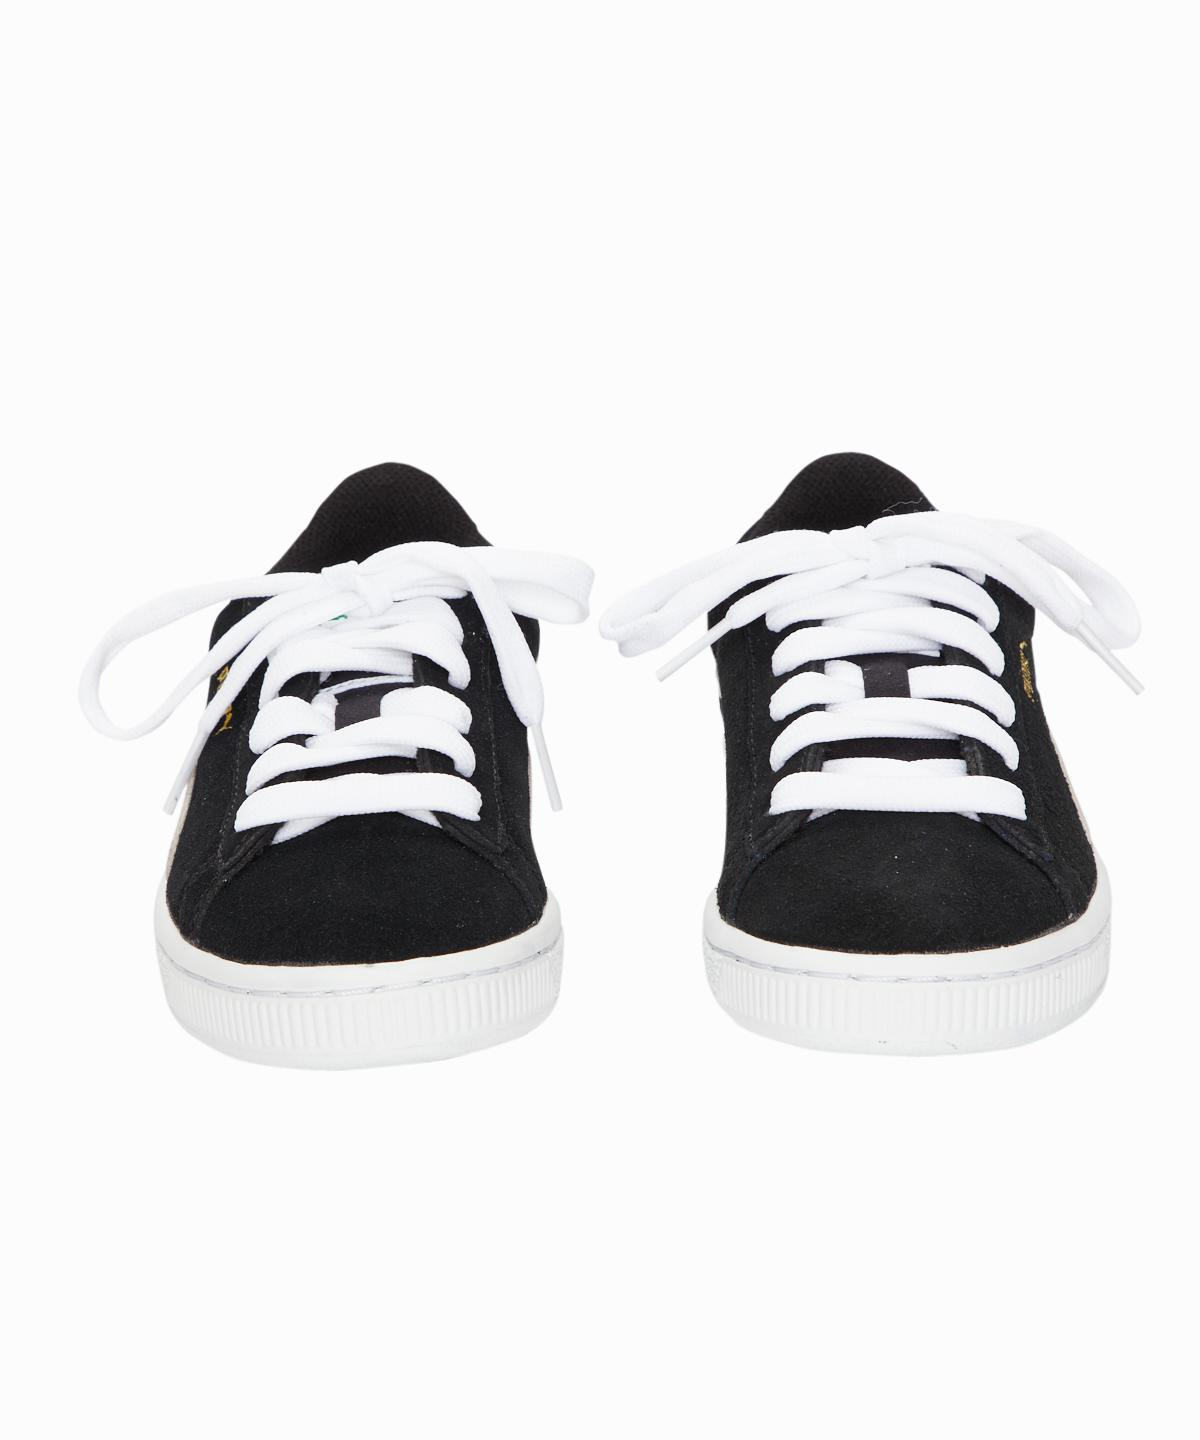 PS Suede Sneakers